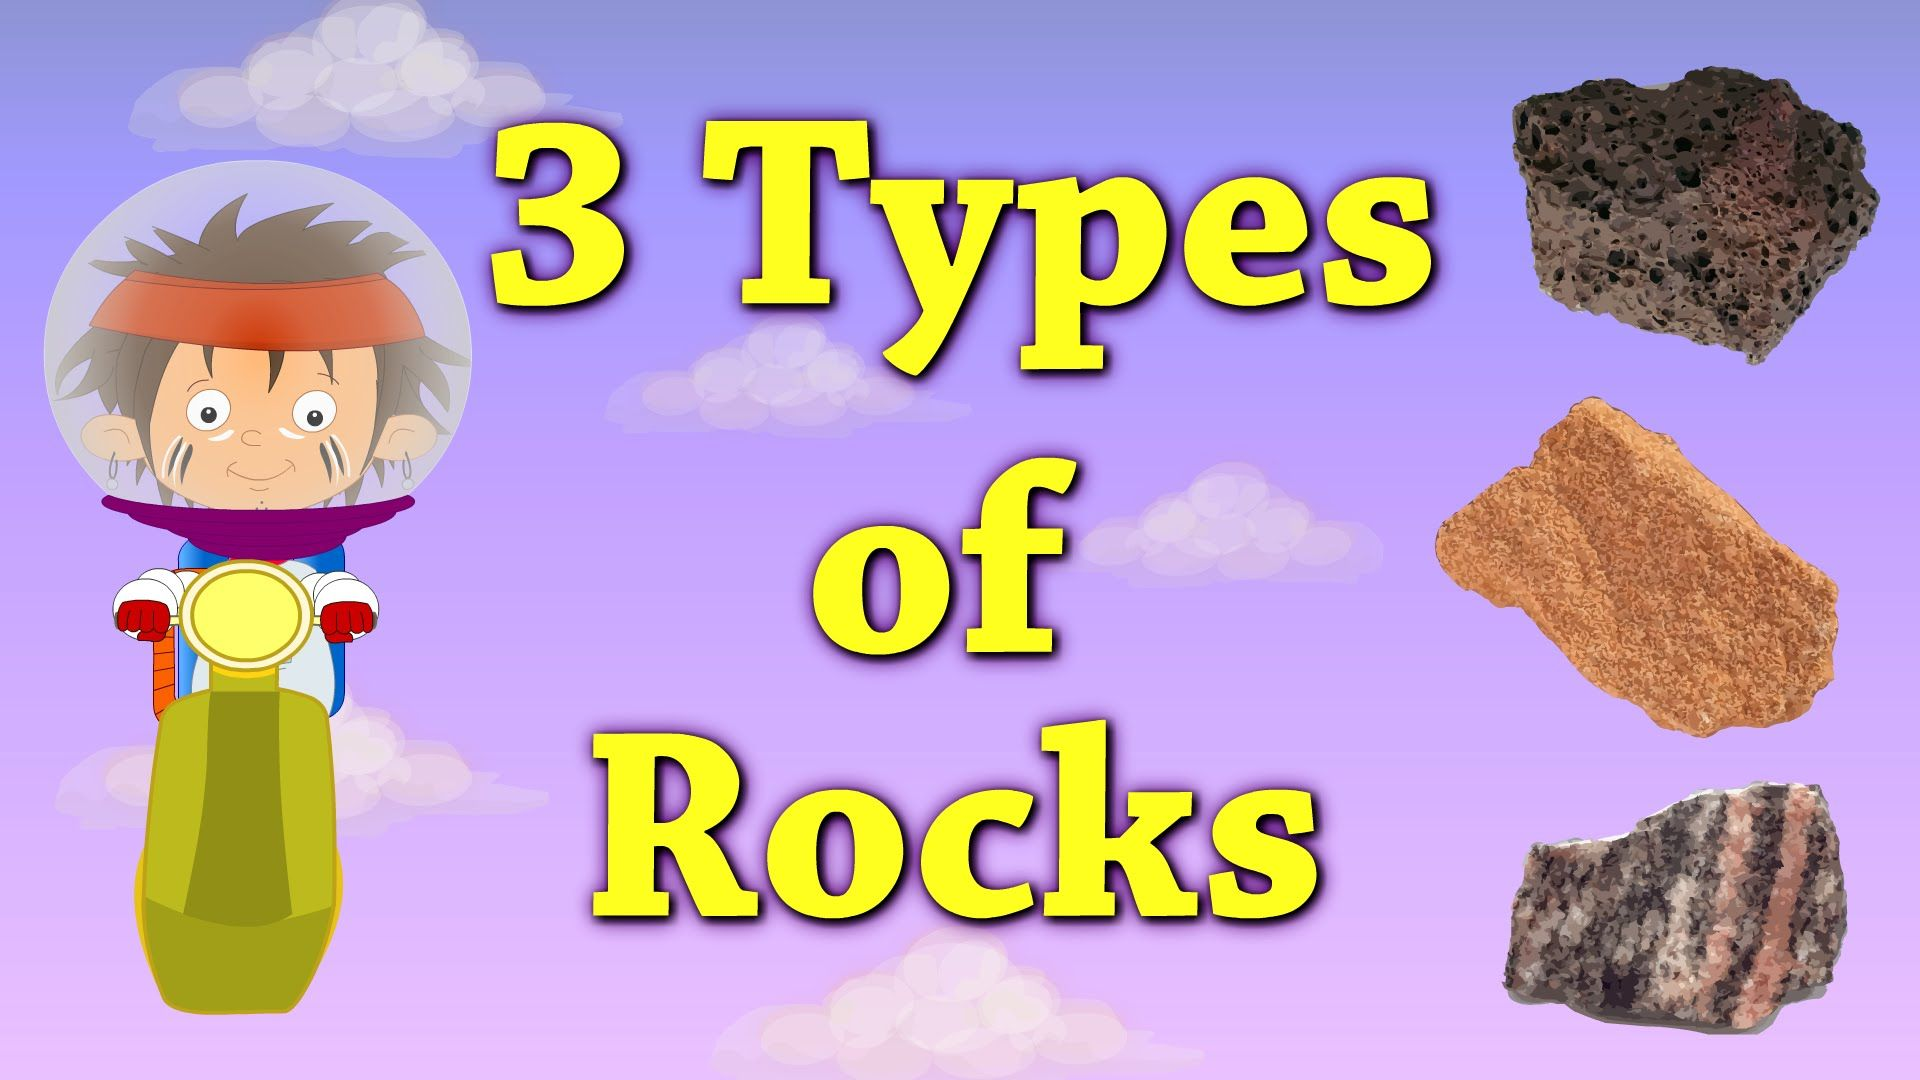 You Will Learn About 3 Types Of Rocks In This Video